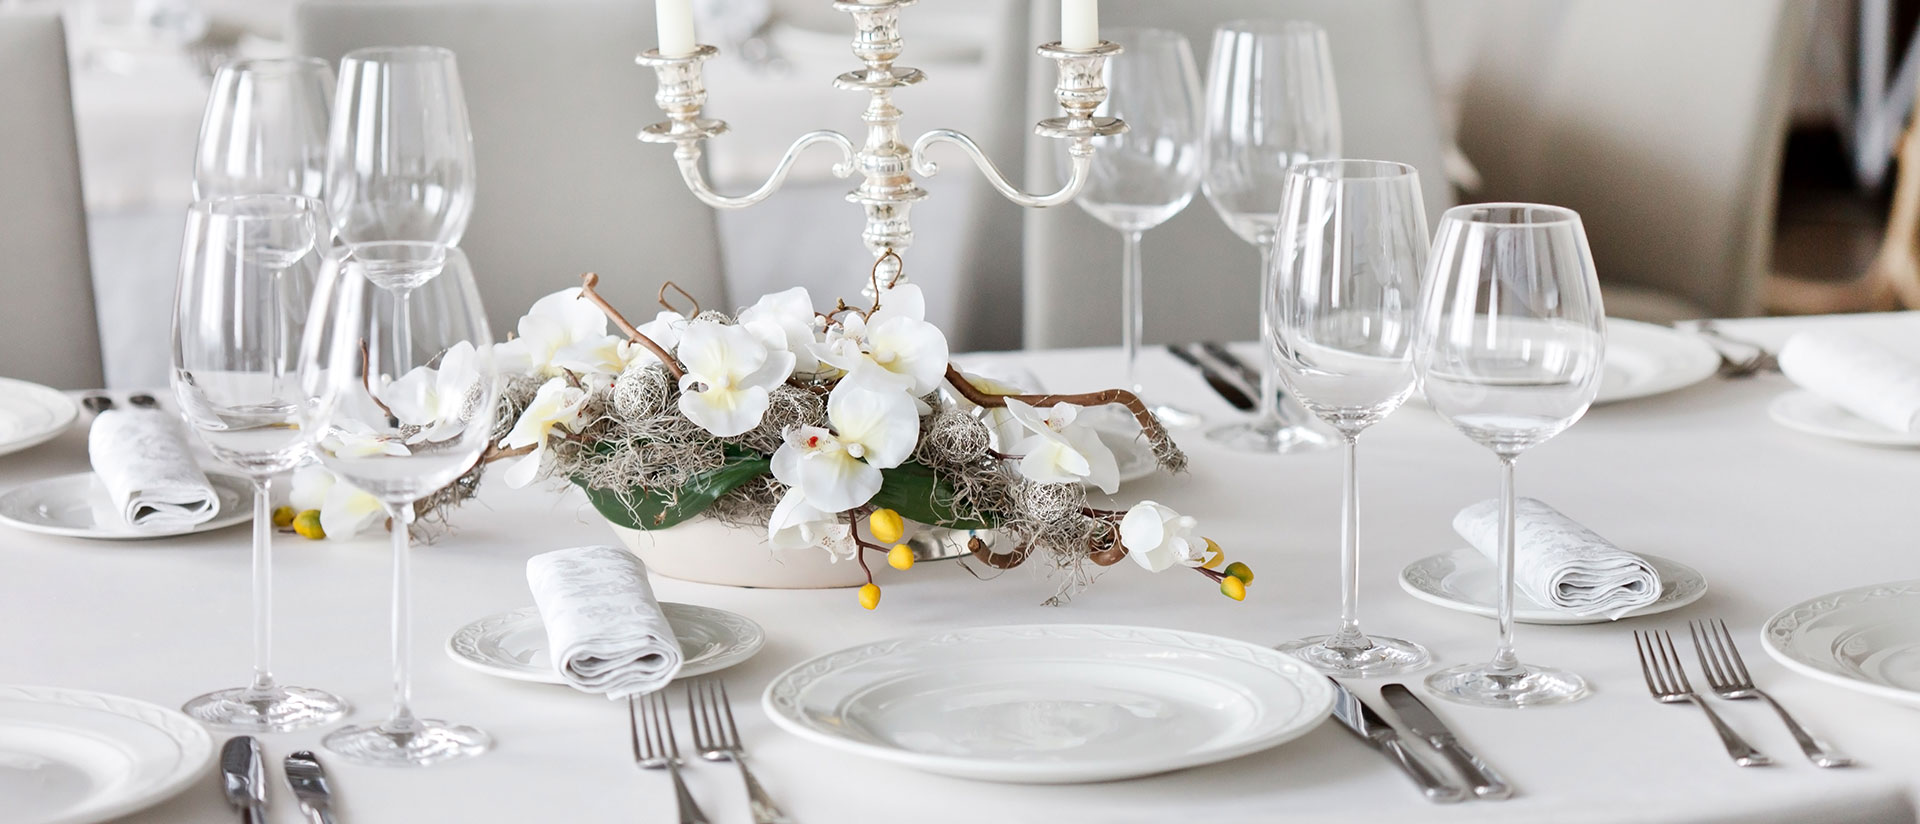 hosting-the-perfect-banquet-dressing-the-tables